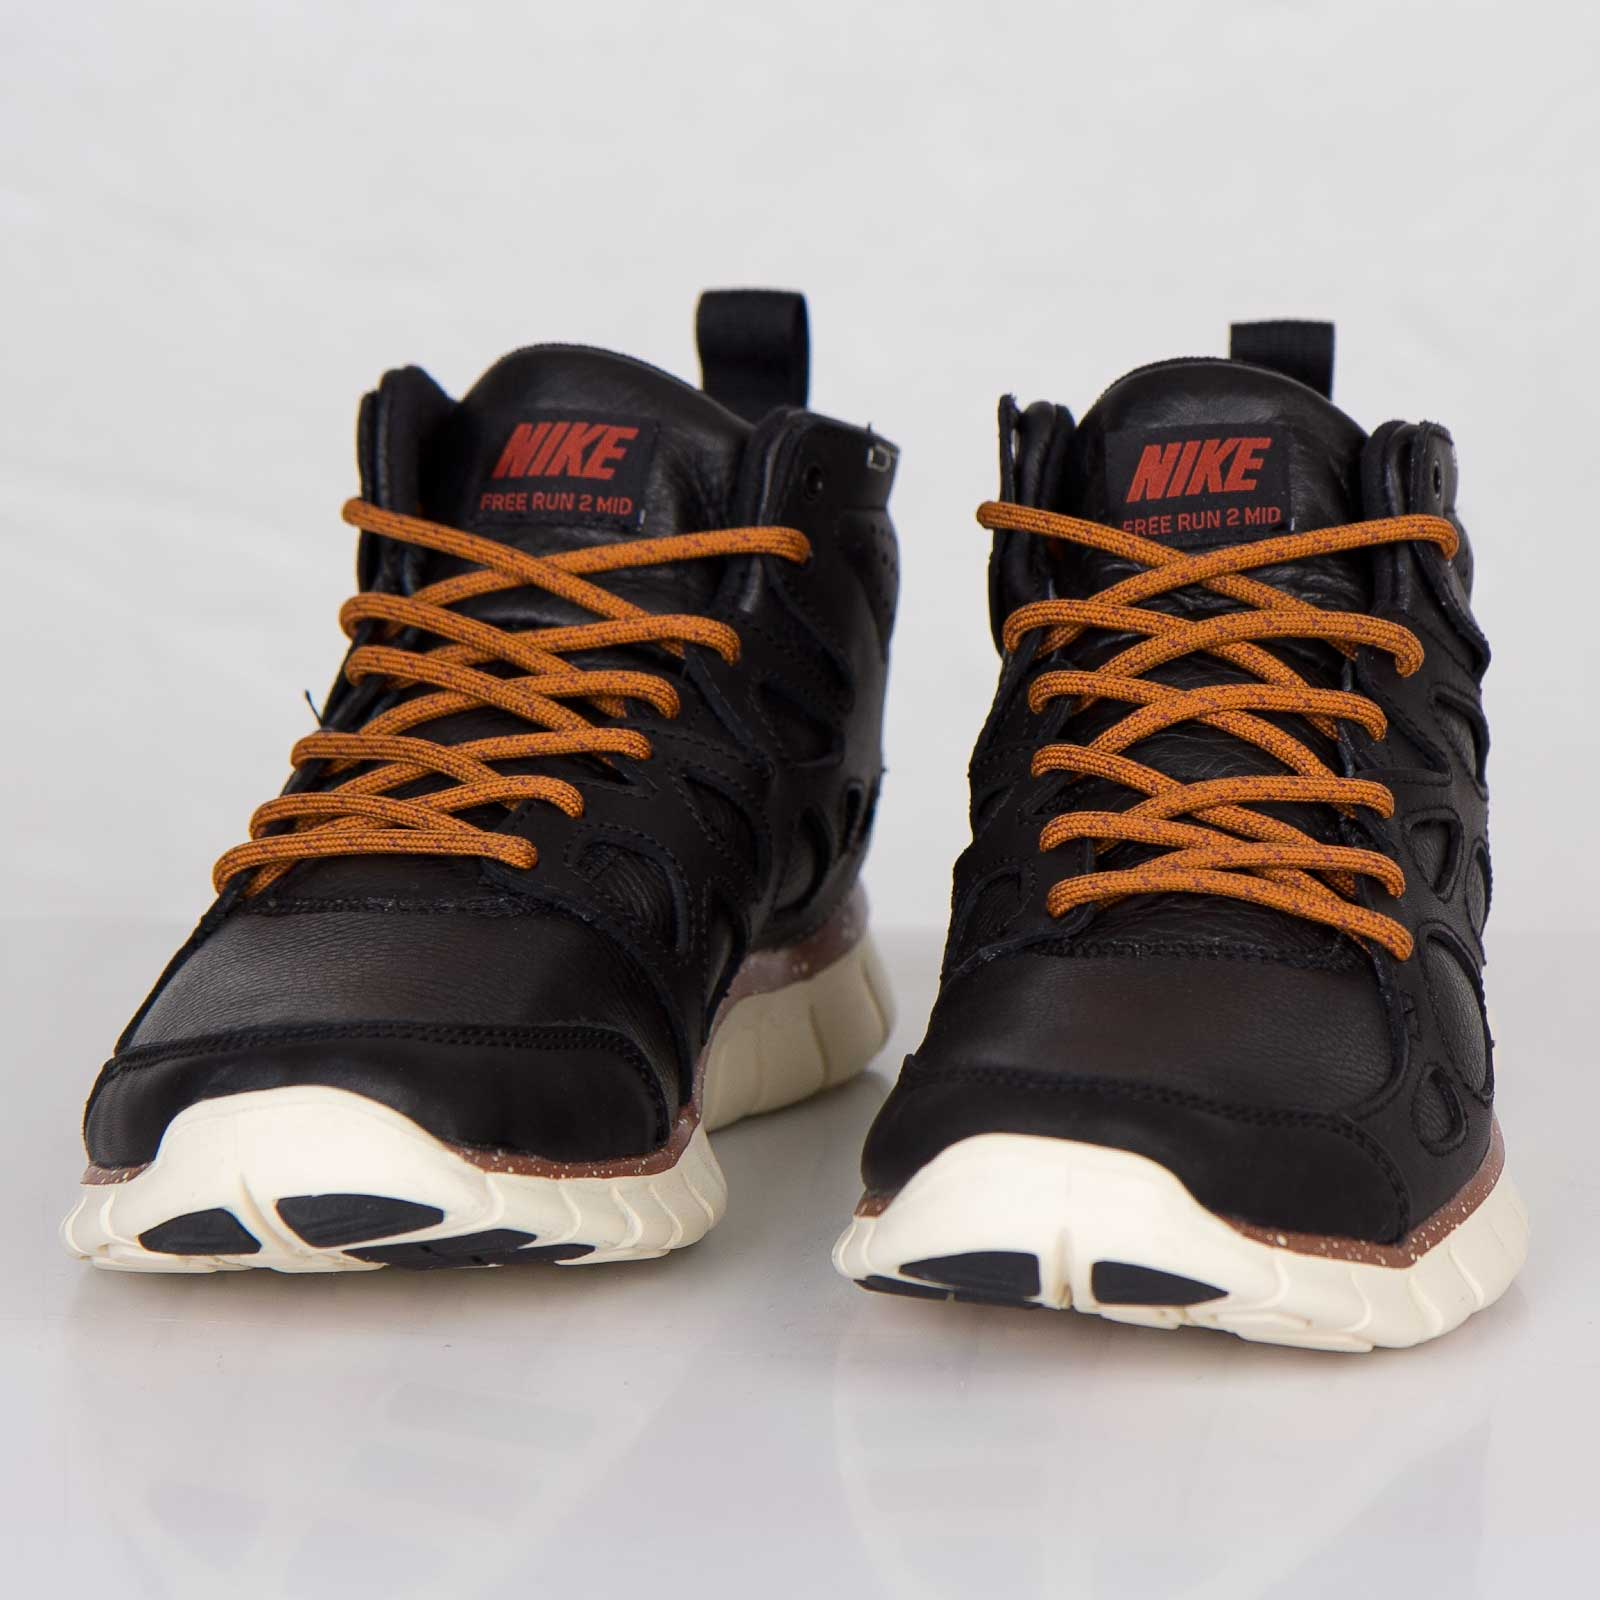 half off b9b84 a0e7e ... Nike Free Run 2 Sneakerboot QS ...